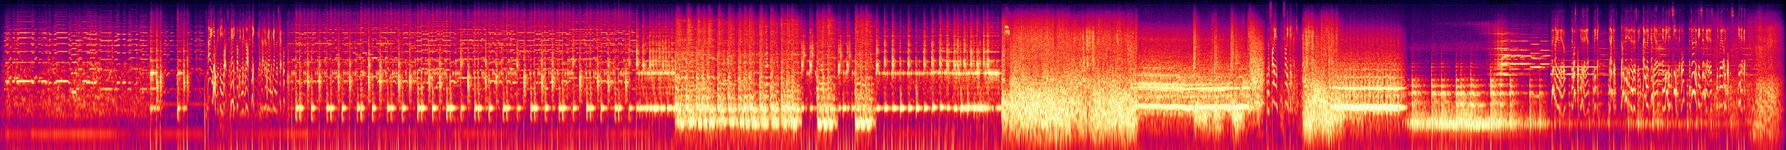 It Was a Solid Killing Match - Spectrogram.jpg